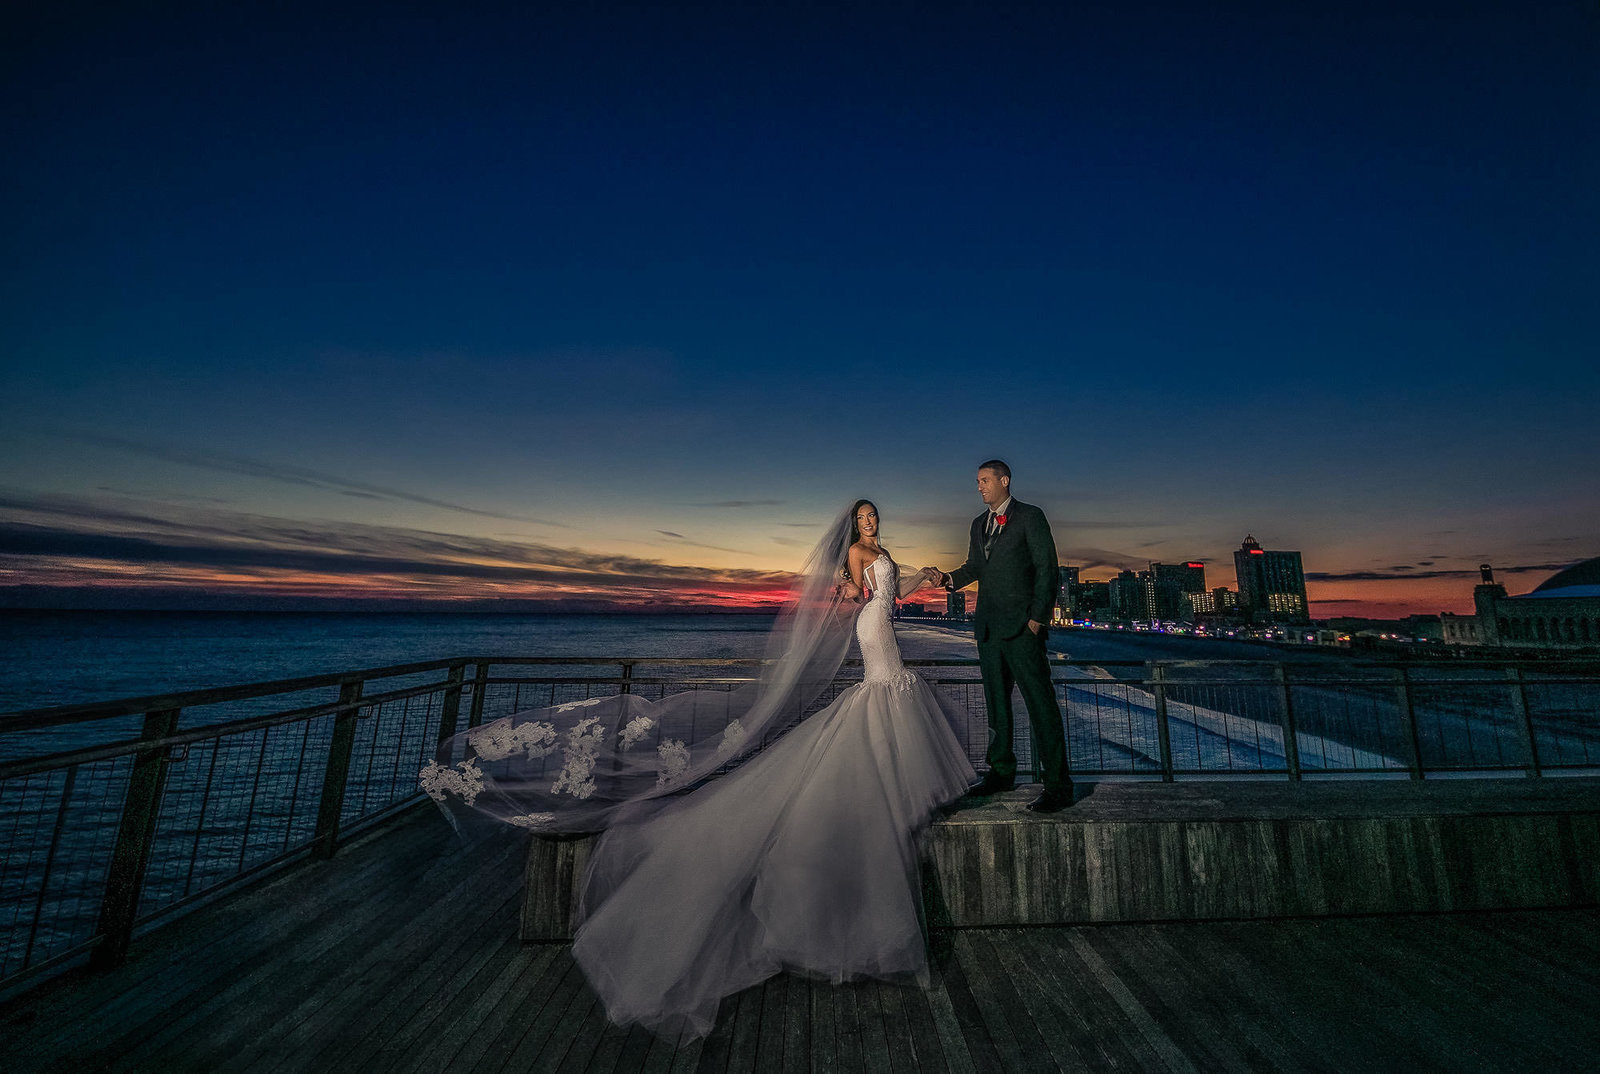 NJ Wedding Photographer Michael Romeo Creations One Atlantic